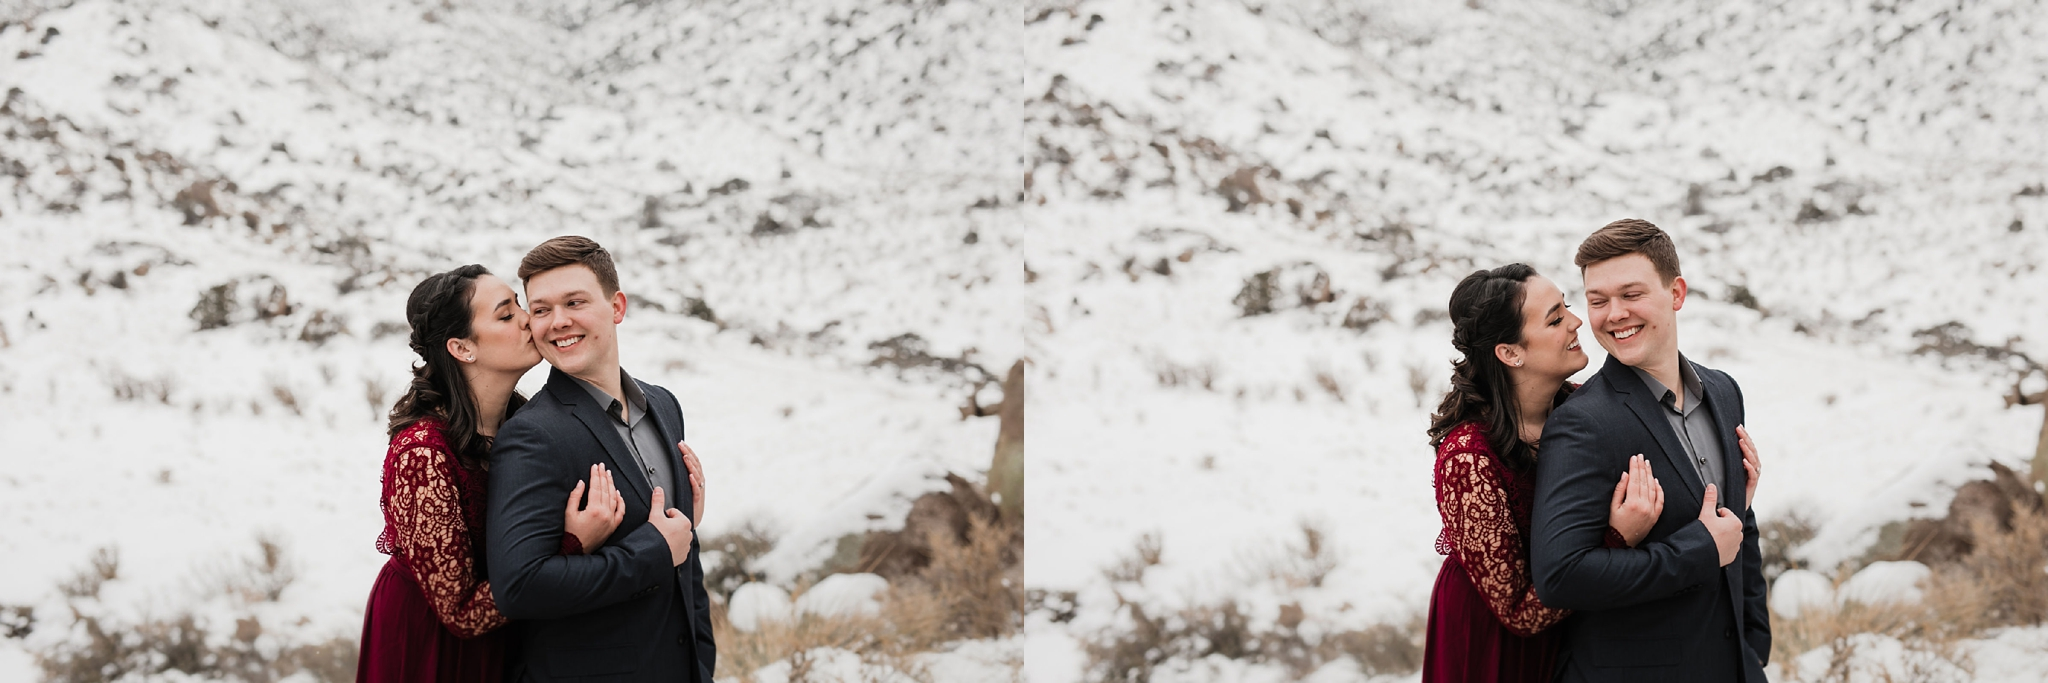 Alicia+lucia+photography+-+albuquerque+wedding+photographer+-+santa+fe+wedding+photography+-+new+mexico+wedding+photographer+-+new+mexico+wedding+-+engagement+-+albuquerque+engagement+-+winter+engagement+-+hyatt+tamaya+wedding_0007.jpg